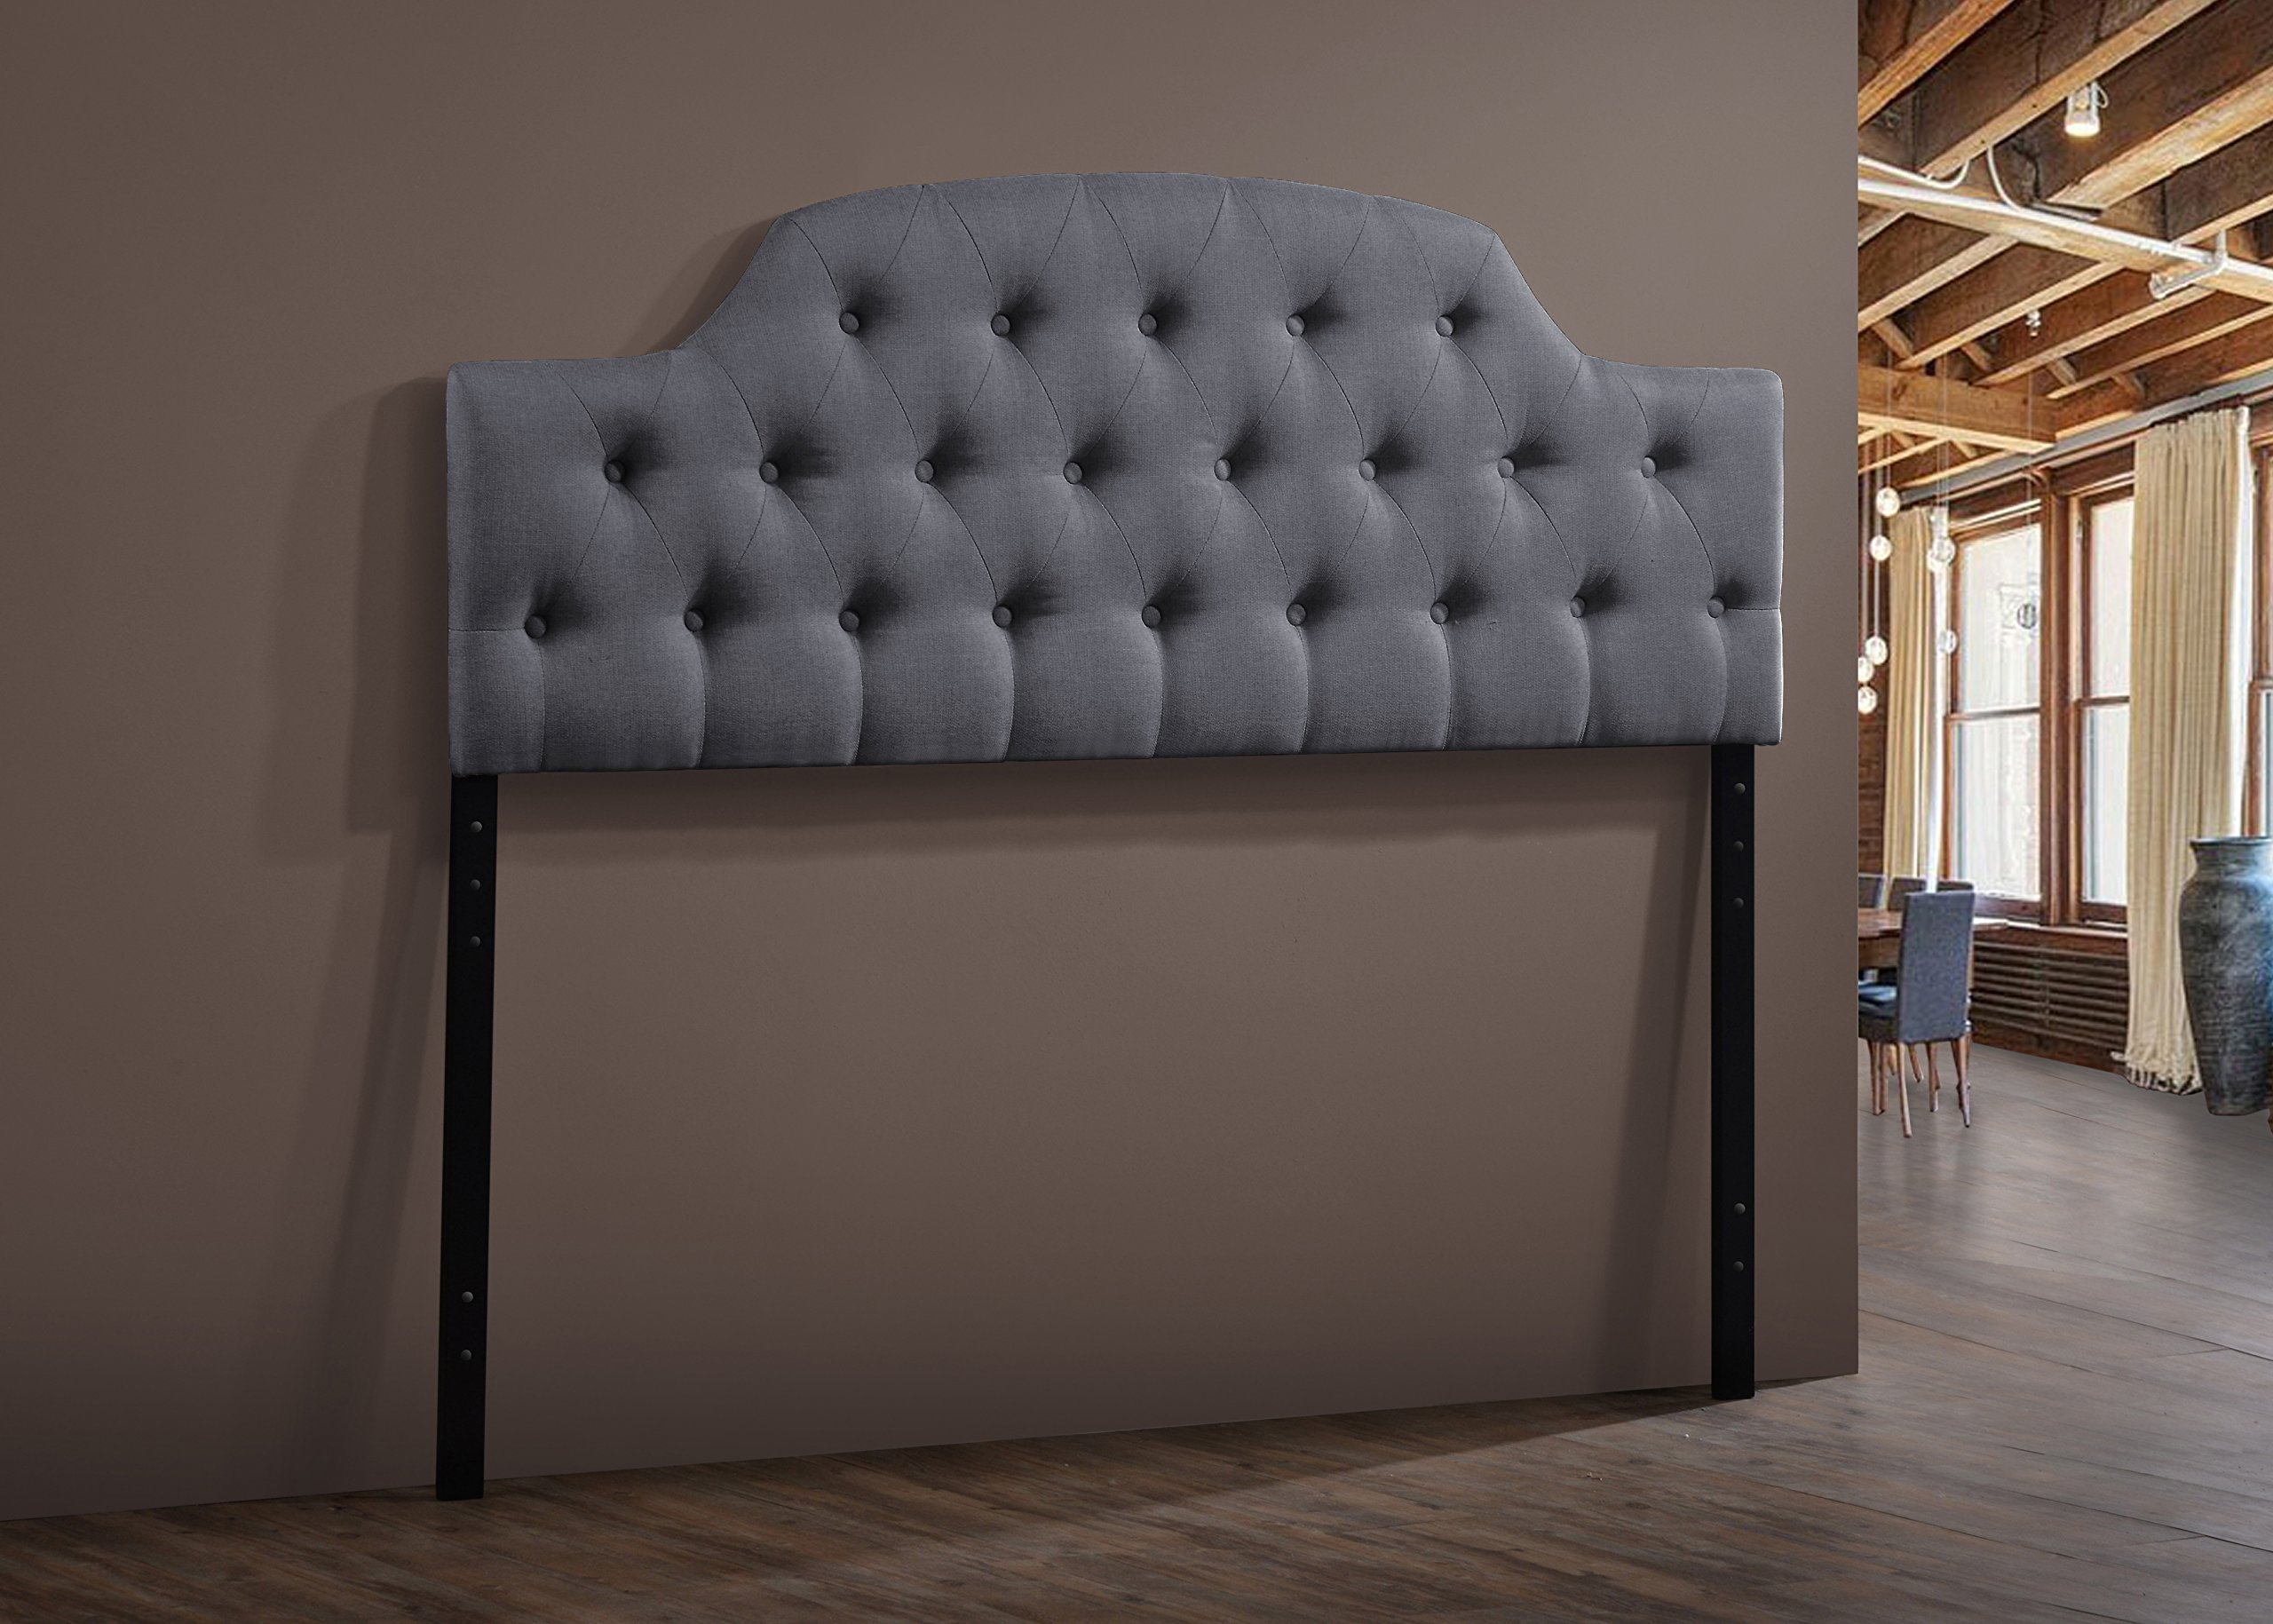 Baxton Studio Wholesale Interiors Morris Modern and Contemporary Fabric Upholstered Button-Tufted Scalloped Headboard, Full, Grey by Baxton Studio